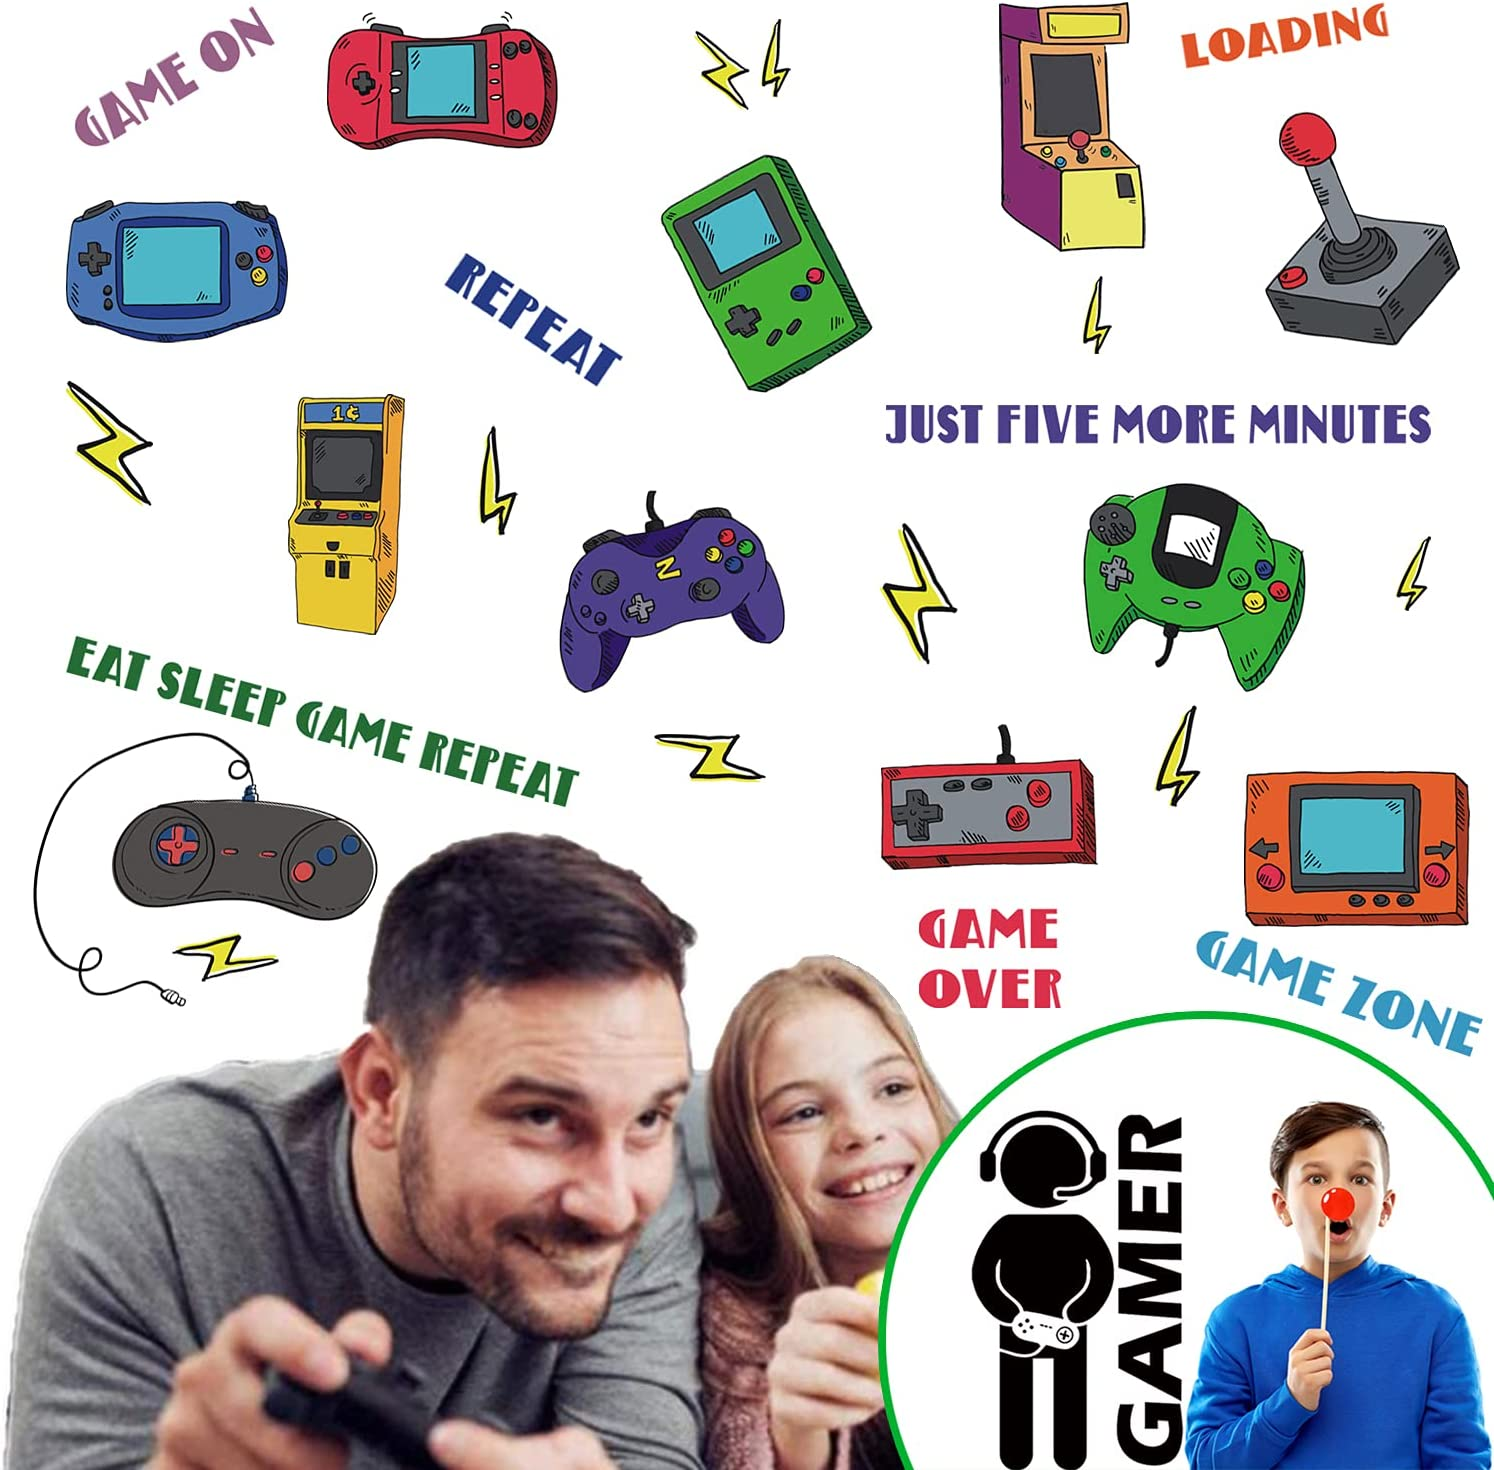 45 Pieces Gamer Wall Stickers Video Game Wall Decals, Cool Gamer Controller Classic Game Phrases Boys Room Decor - Removable DIY Cartoon Party Wallpaper Posters for Boys Kids Gamer Bedroom Playroom